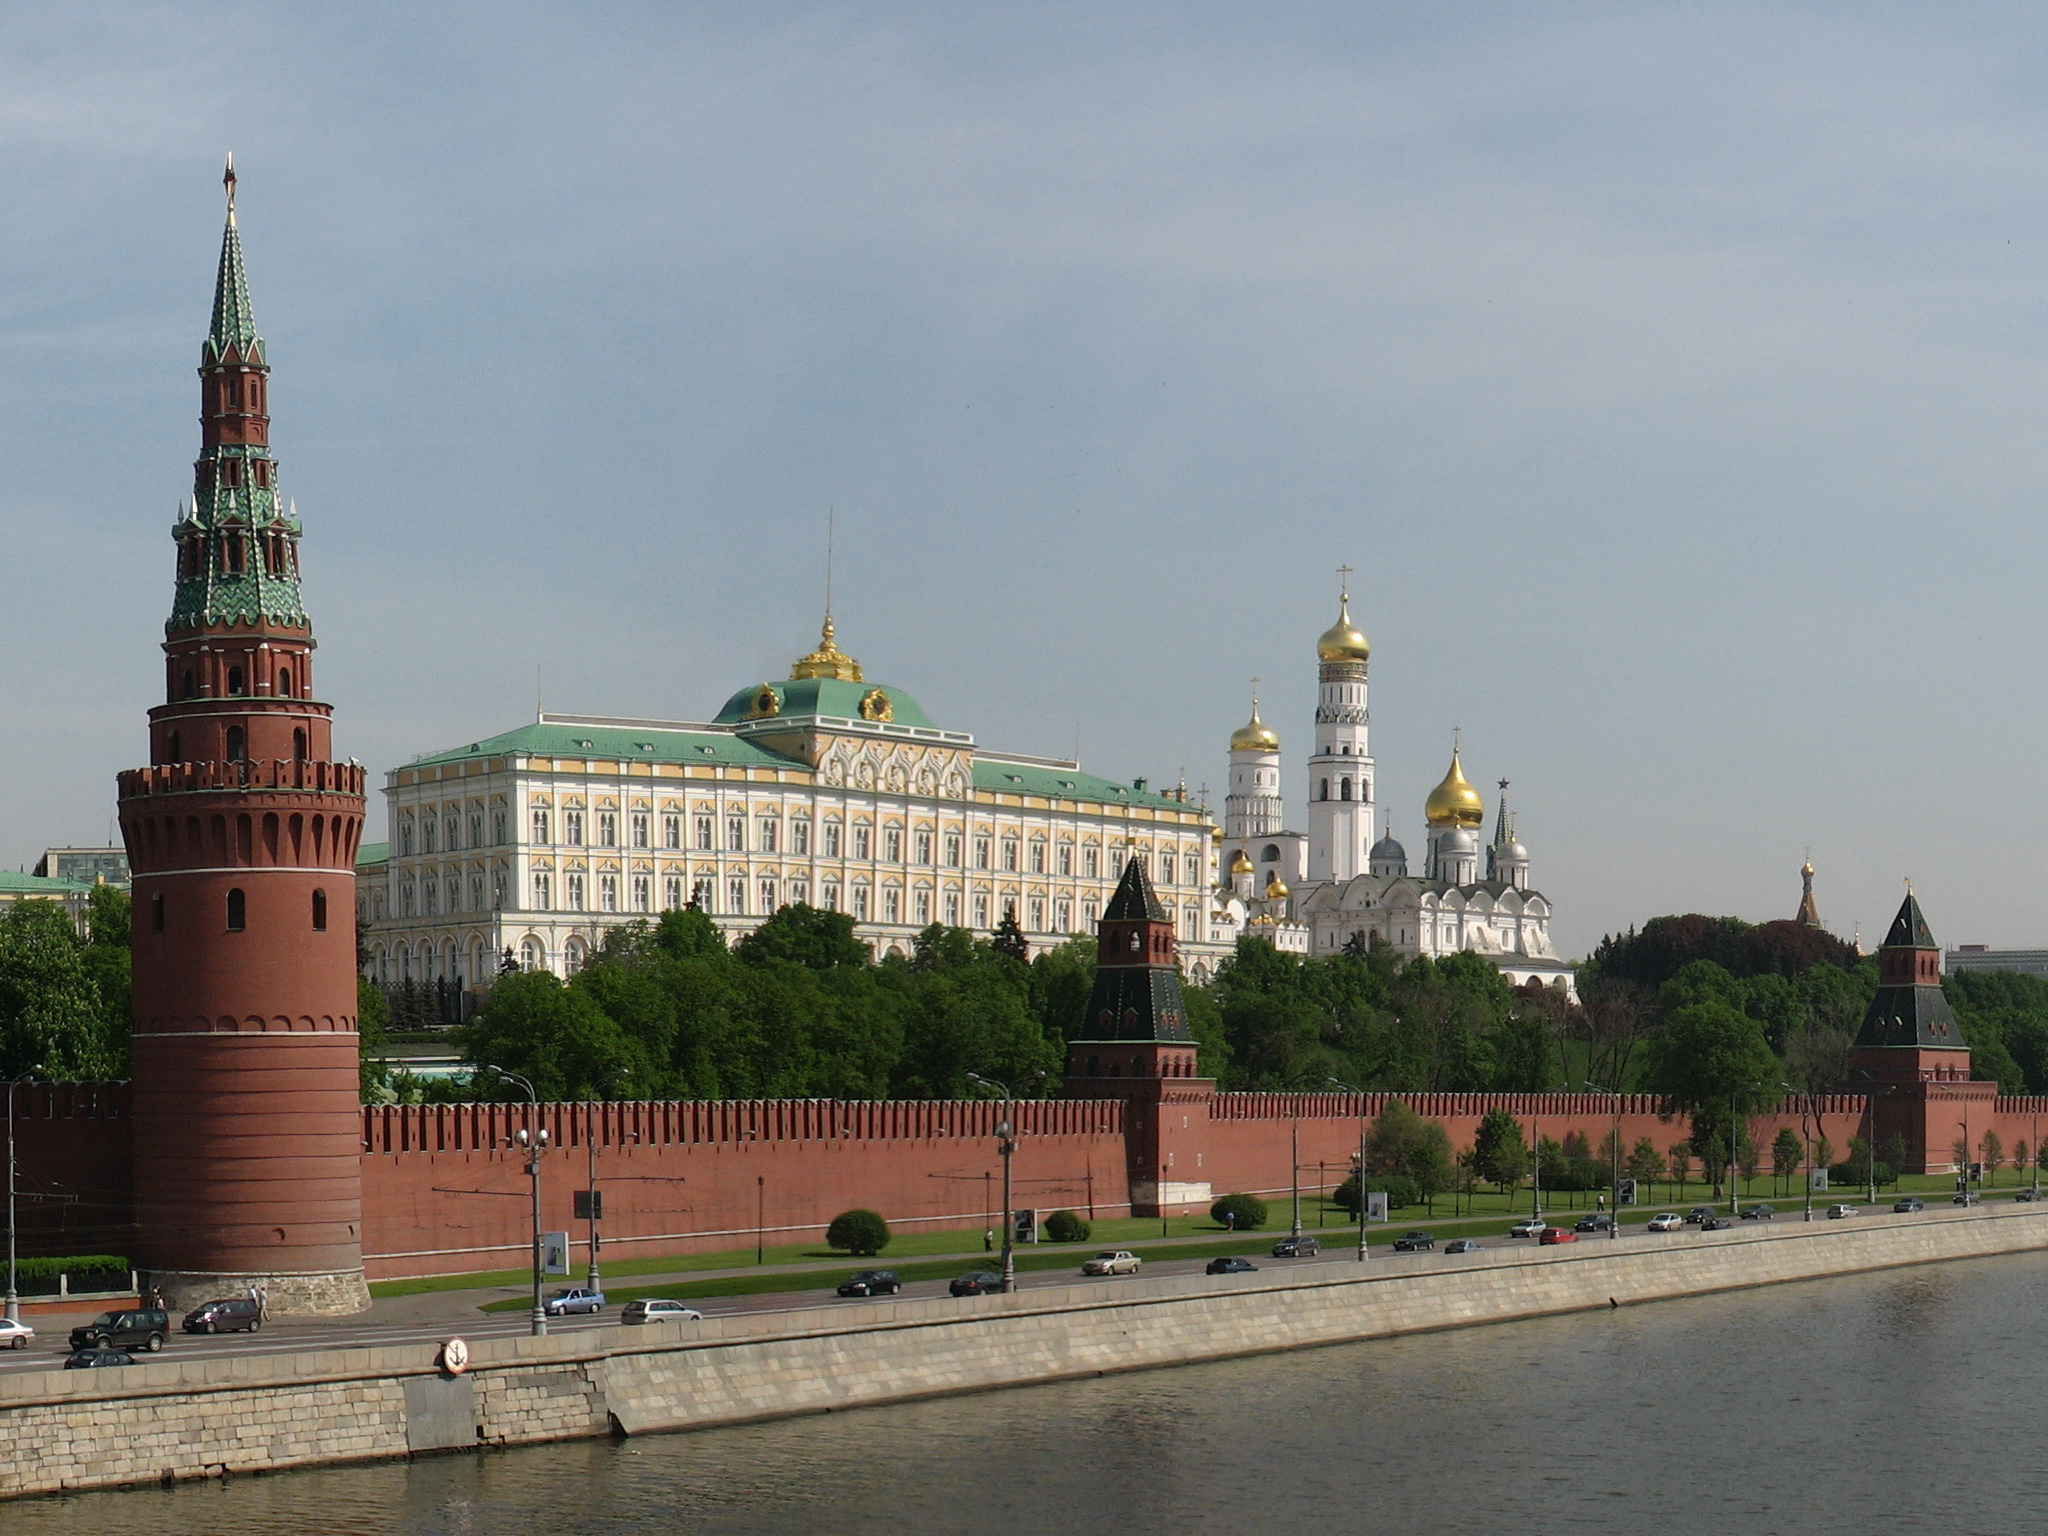 https://upload.wikimedia.org/wikipedia/commons/a/a6/Moscow_Kremlin_from_Kamenny_bridge.jpg